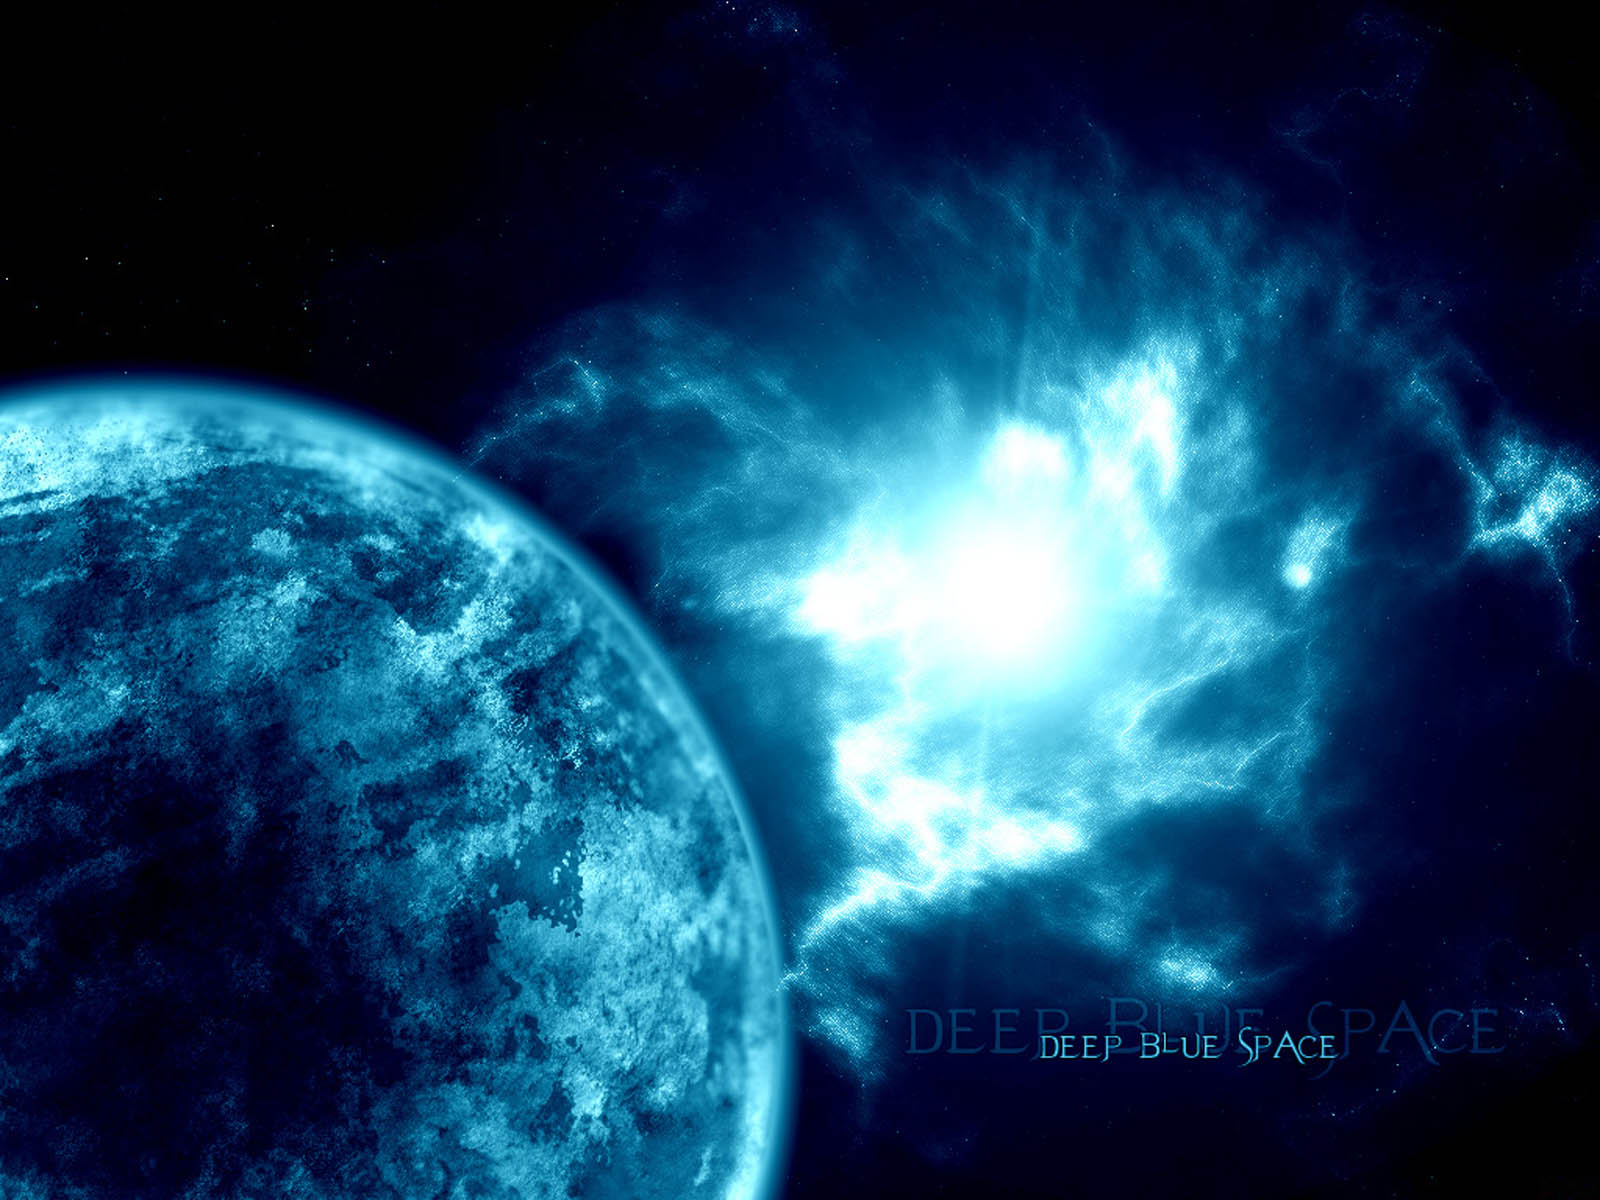 wallpaper Blue Space Wallpapers 1600x1200